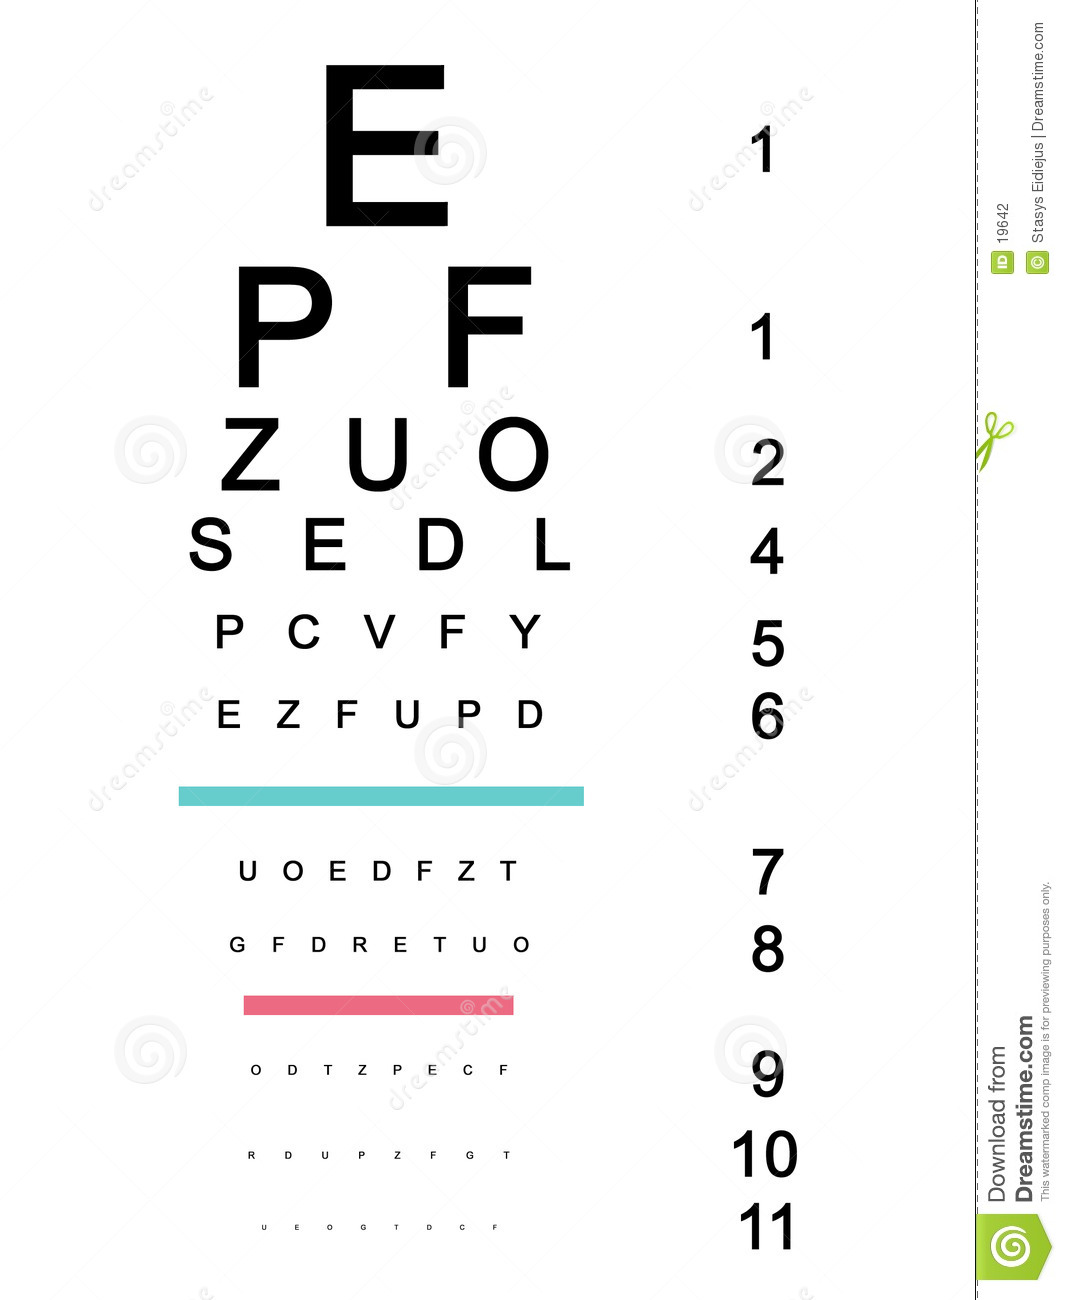 Eye s sight check table